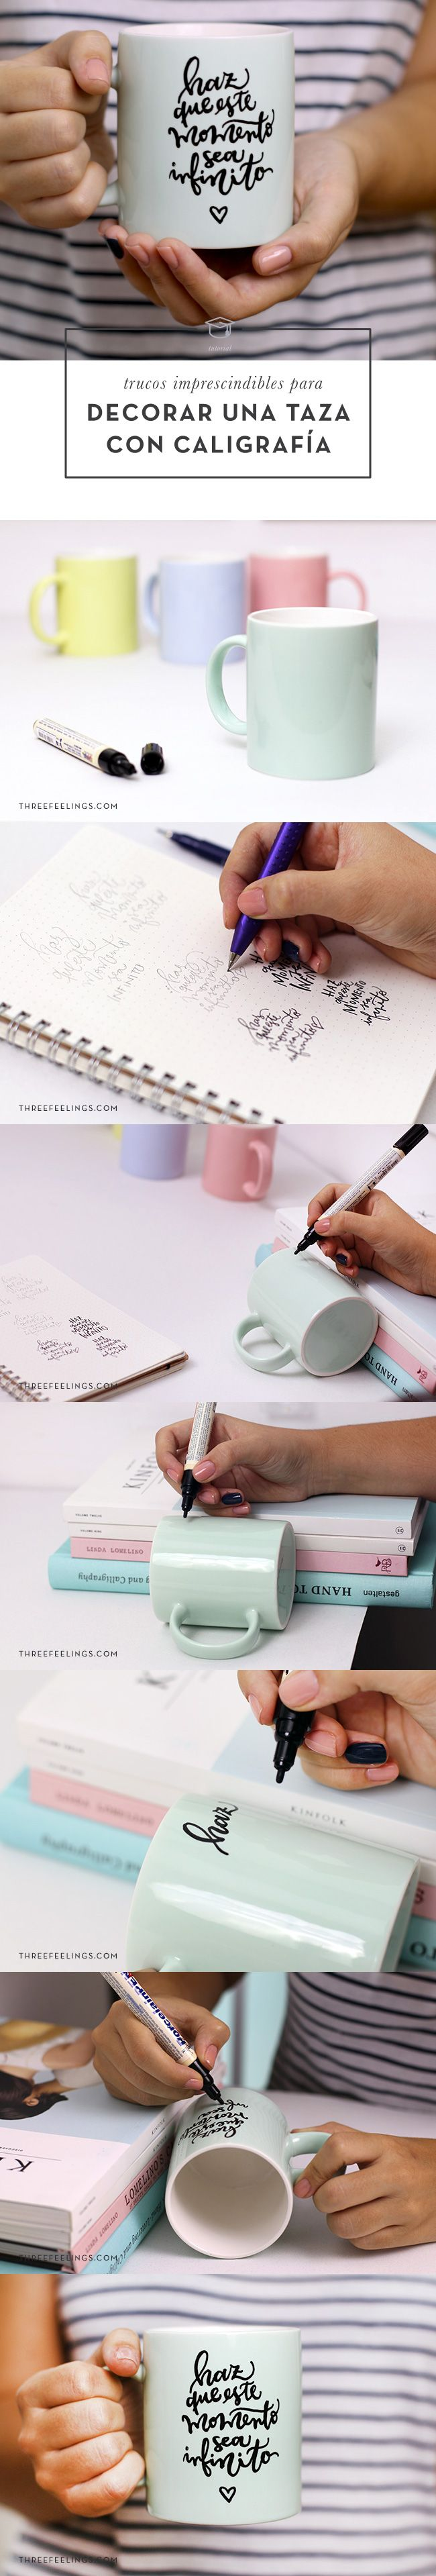 #DIY  How to personalize your own coffee mug with calligraphy